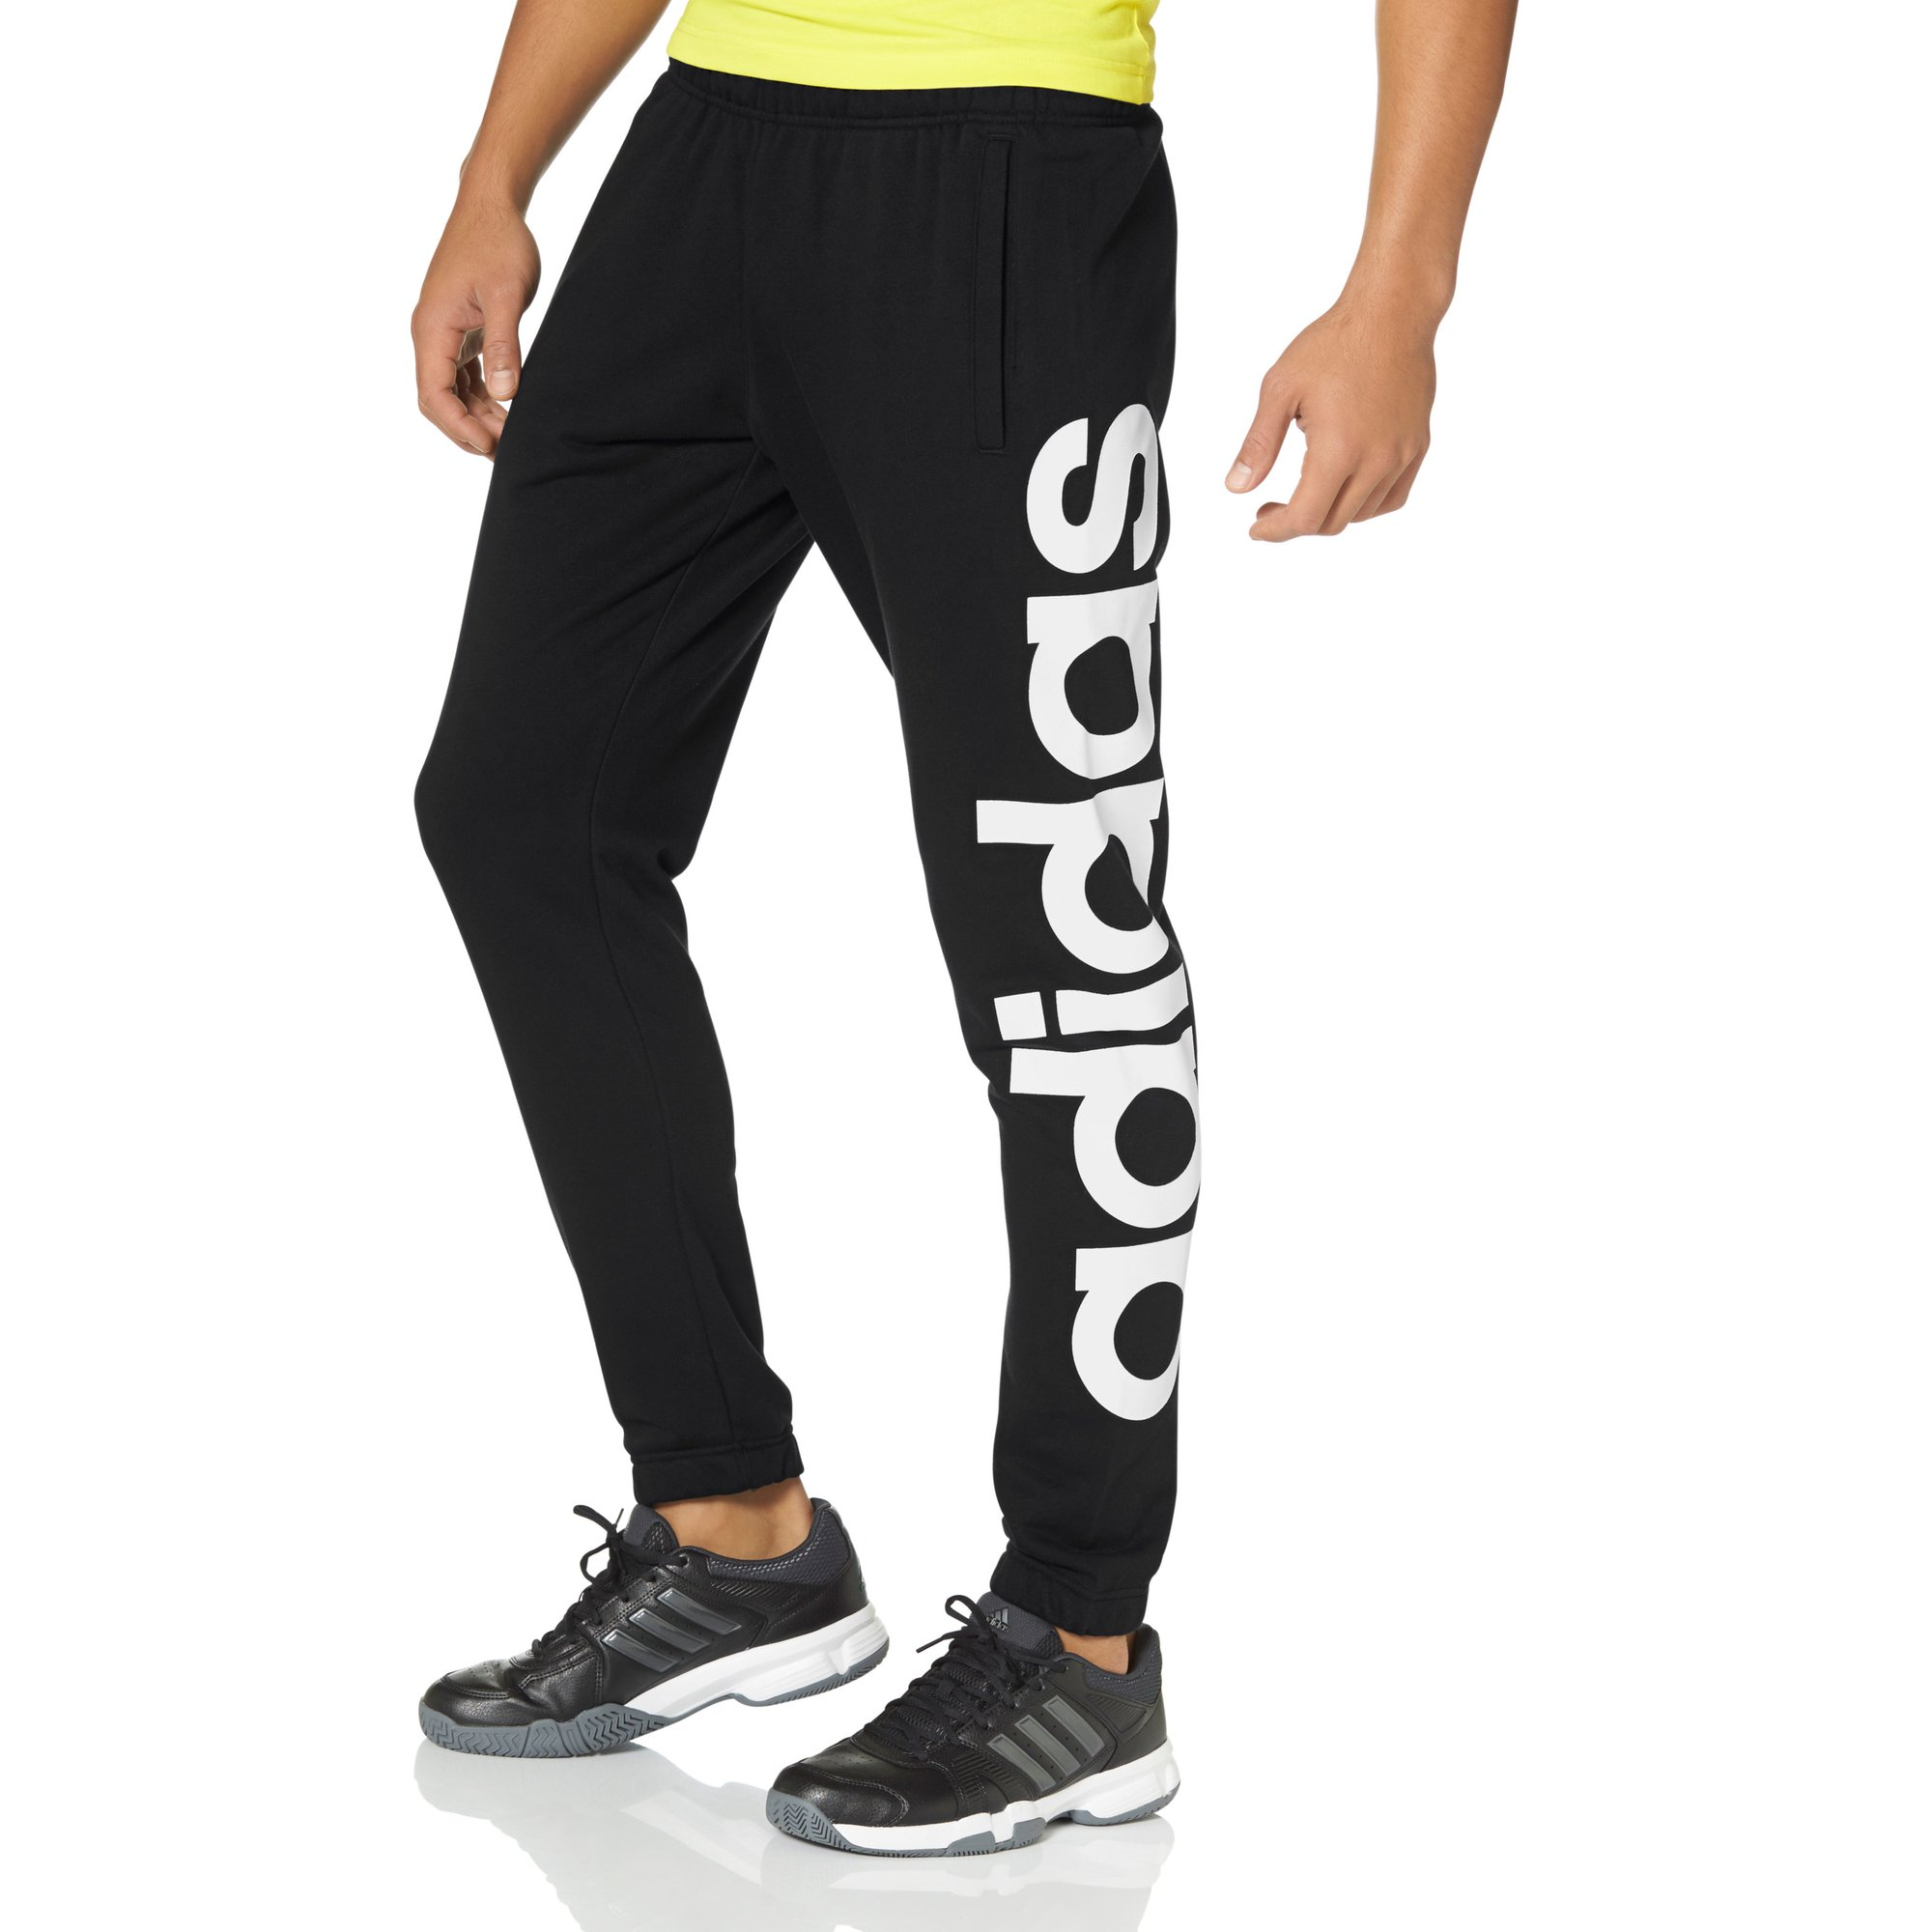 adidas pantalon survetement